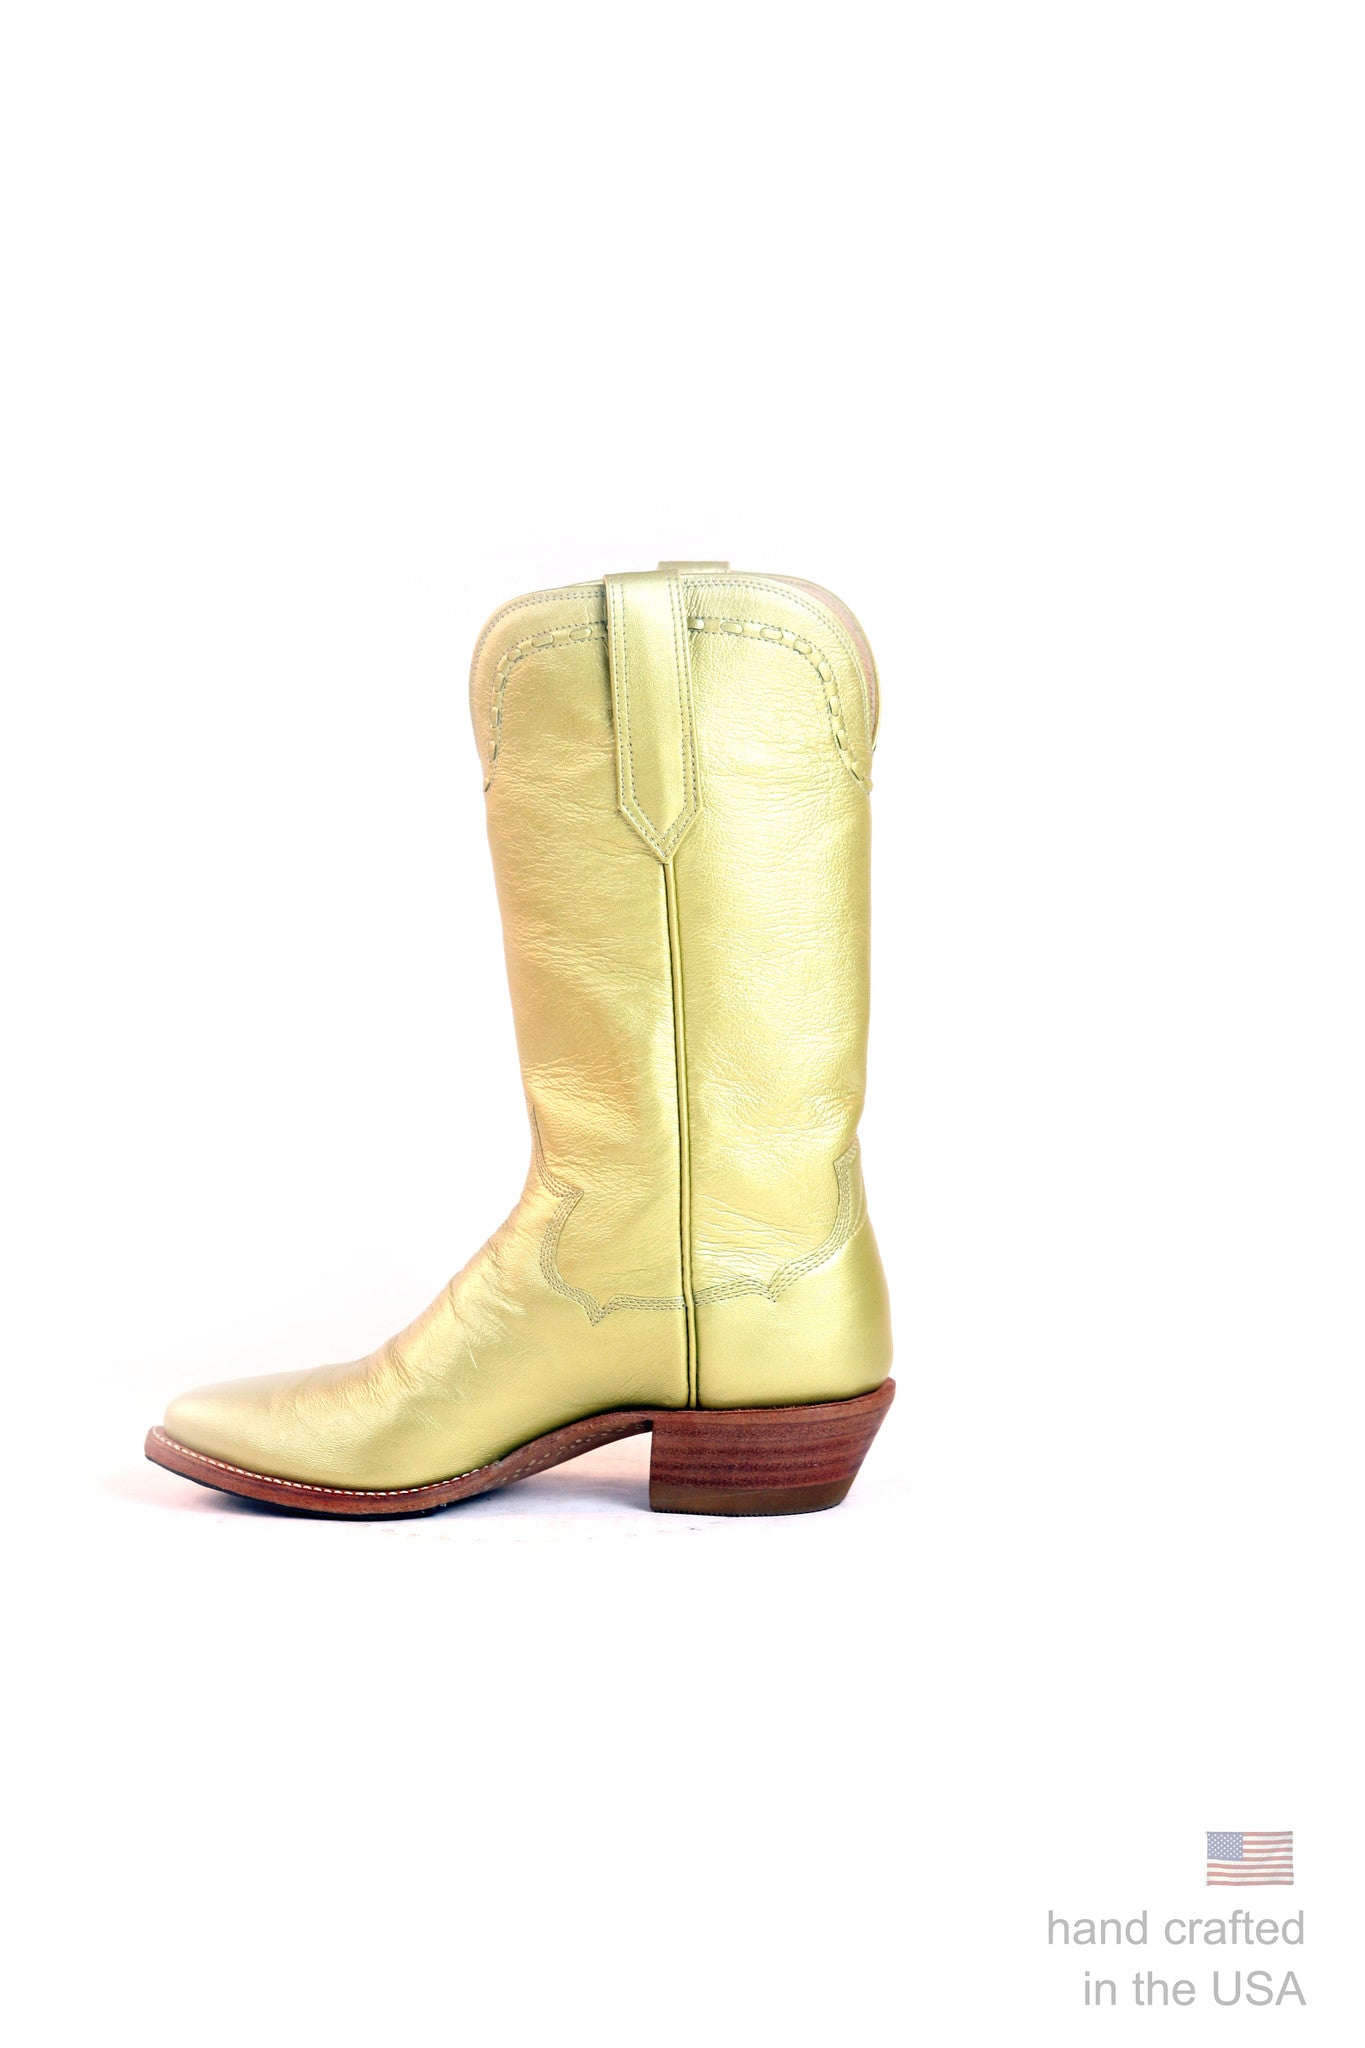 Singles: Boot 0029: Size 7.5 B